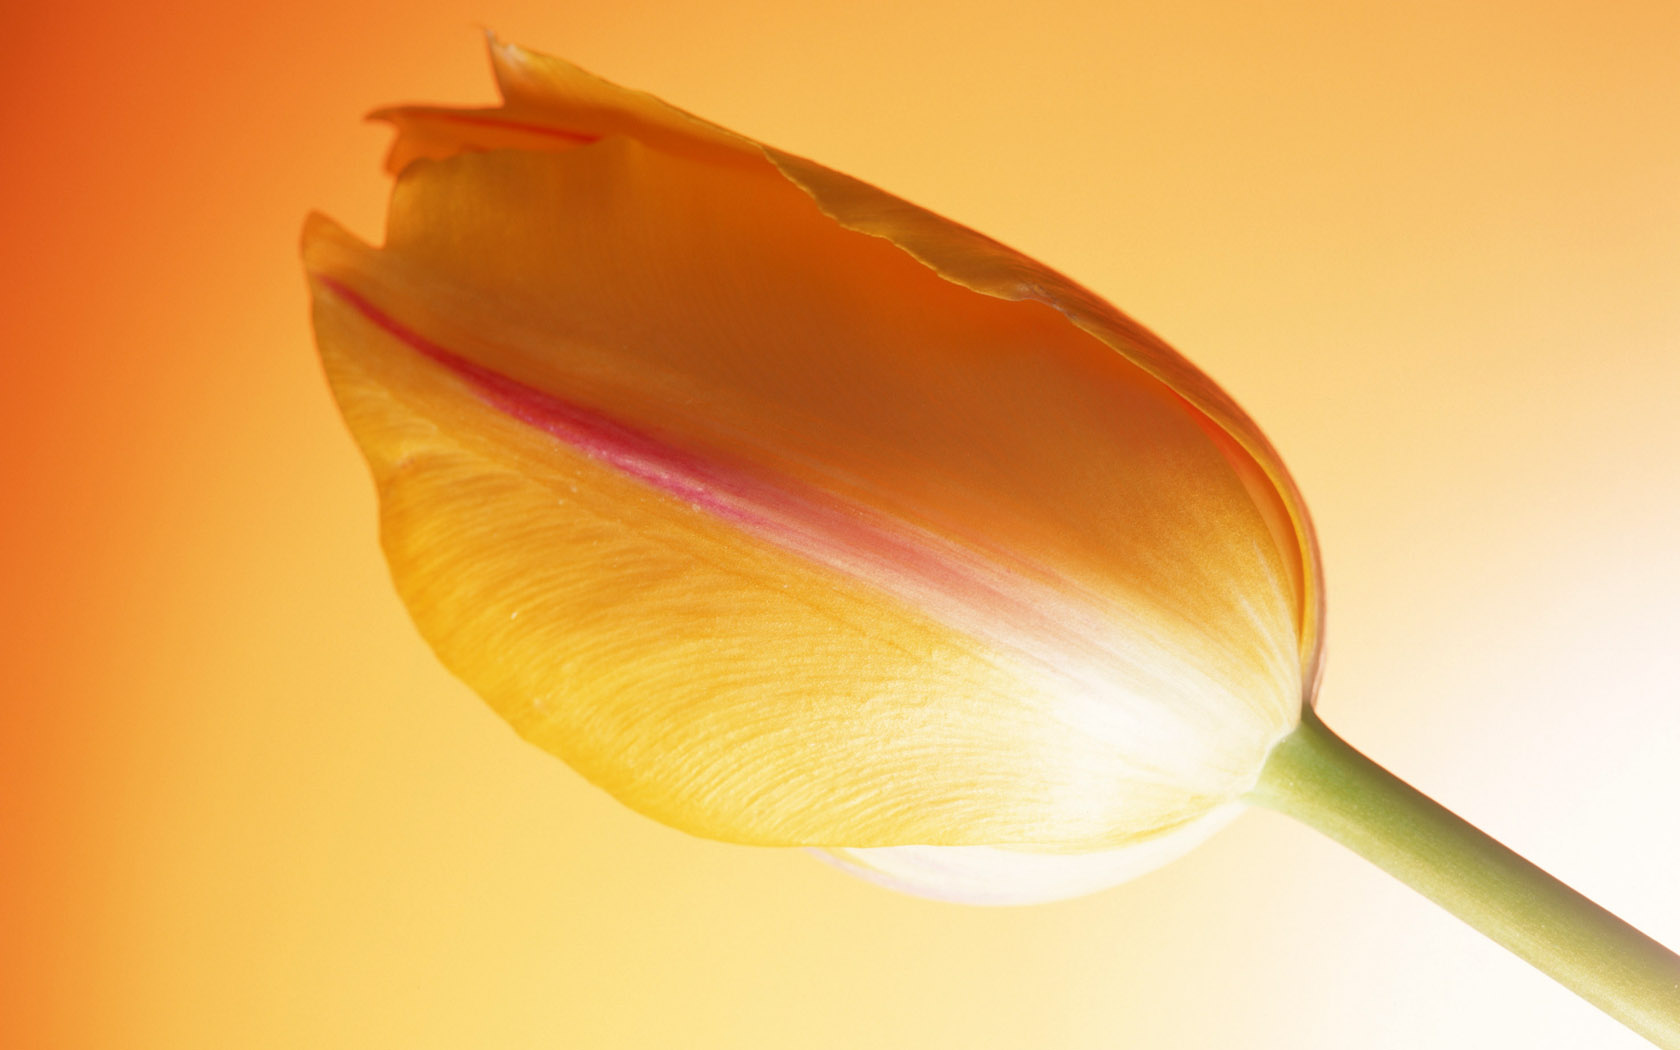 Hot Tulip 399.38 Kb